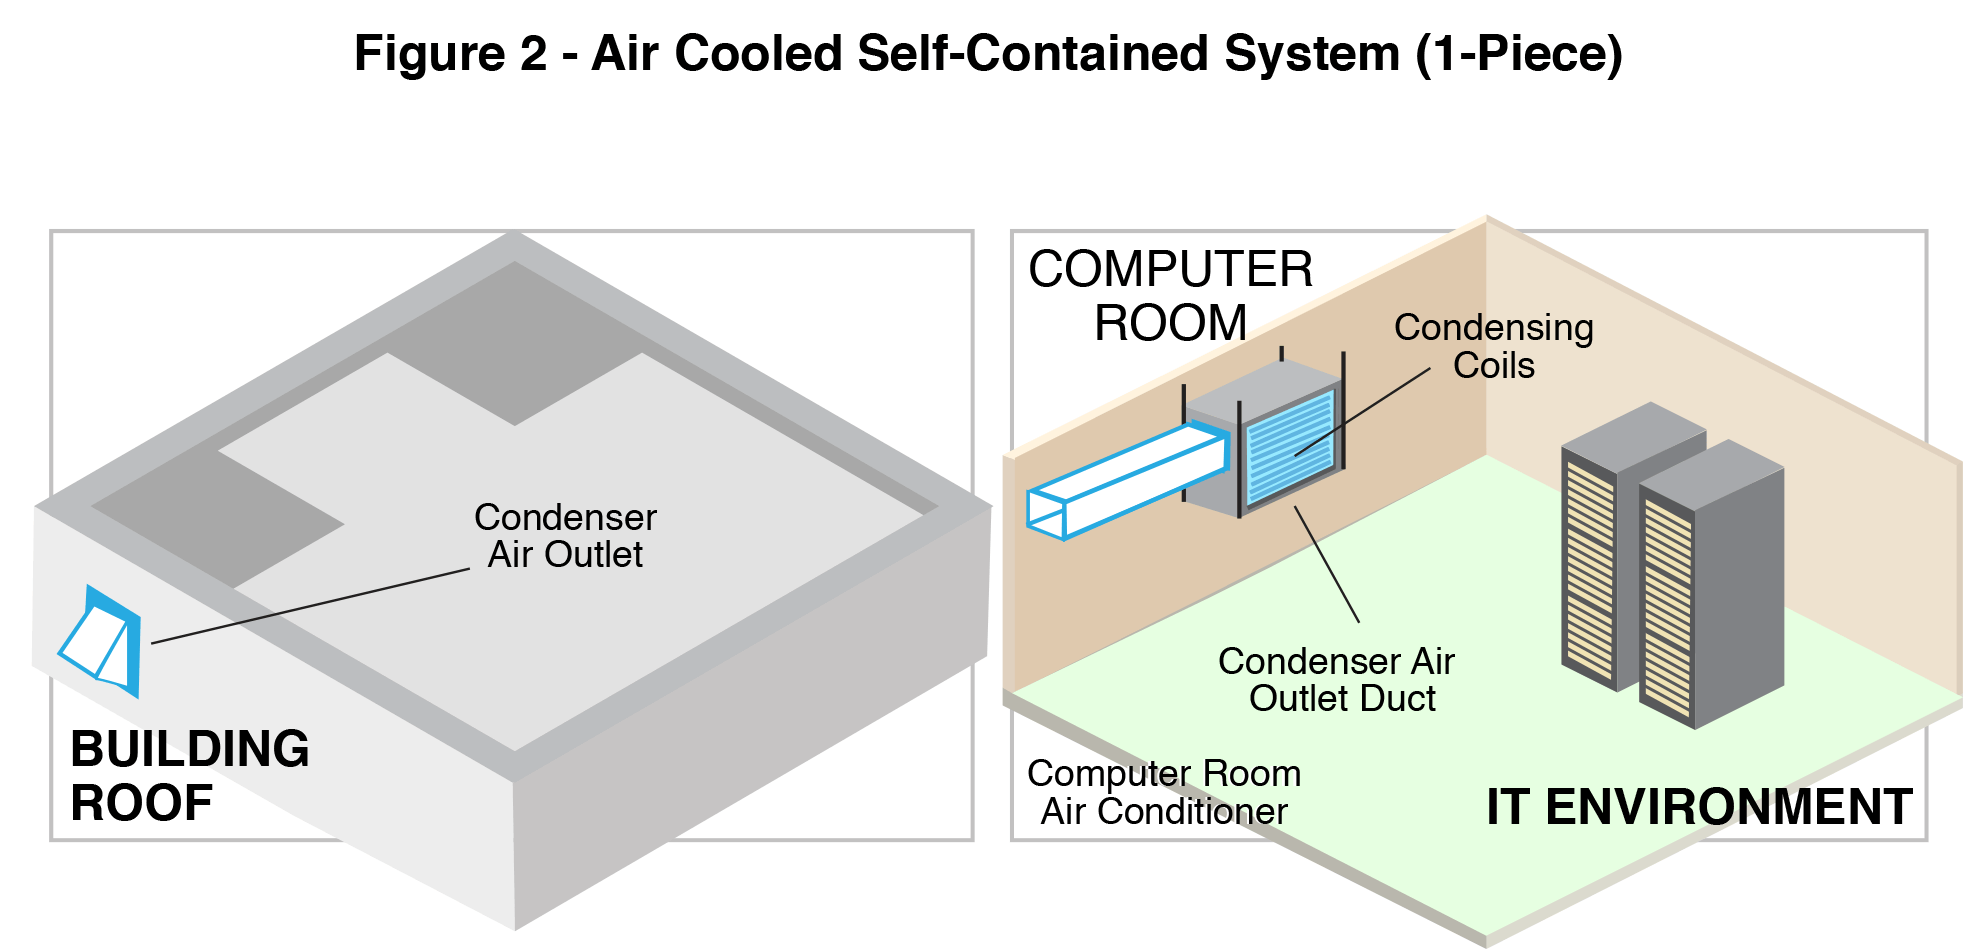 One piece Air-Cooled Self Contained System